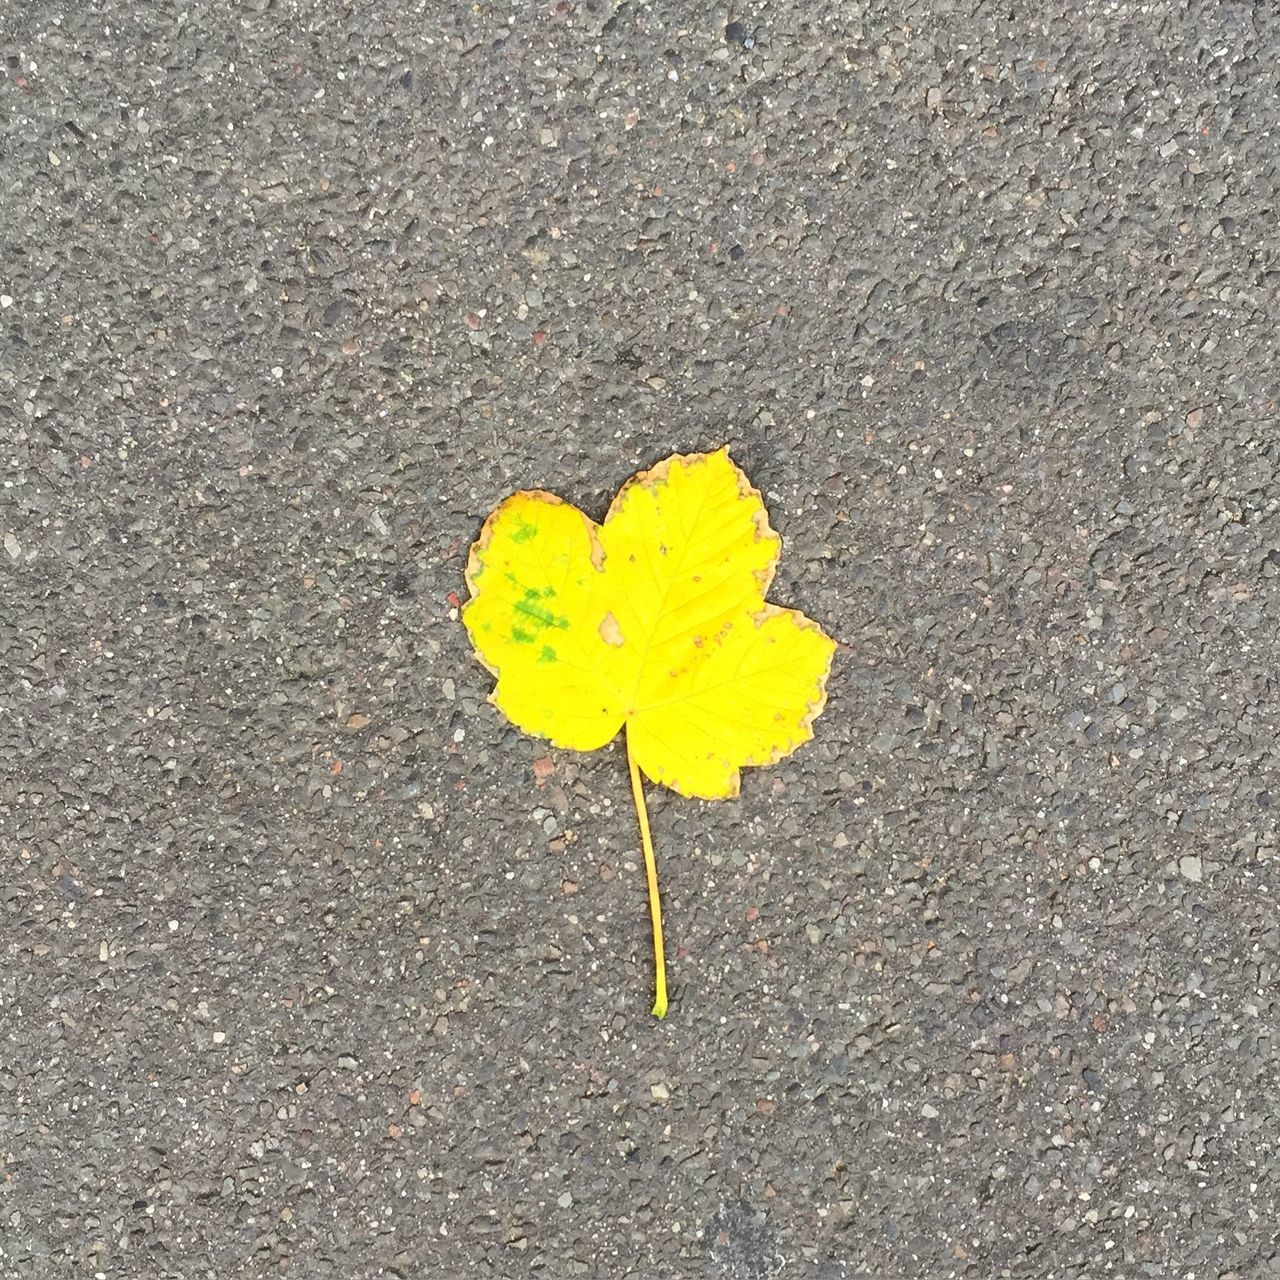 Close-Up Of Yellow Leaf On Ground